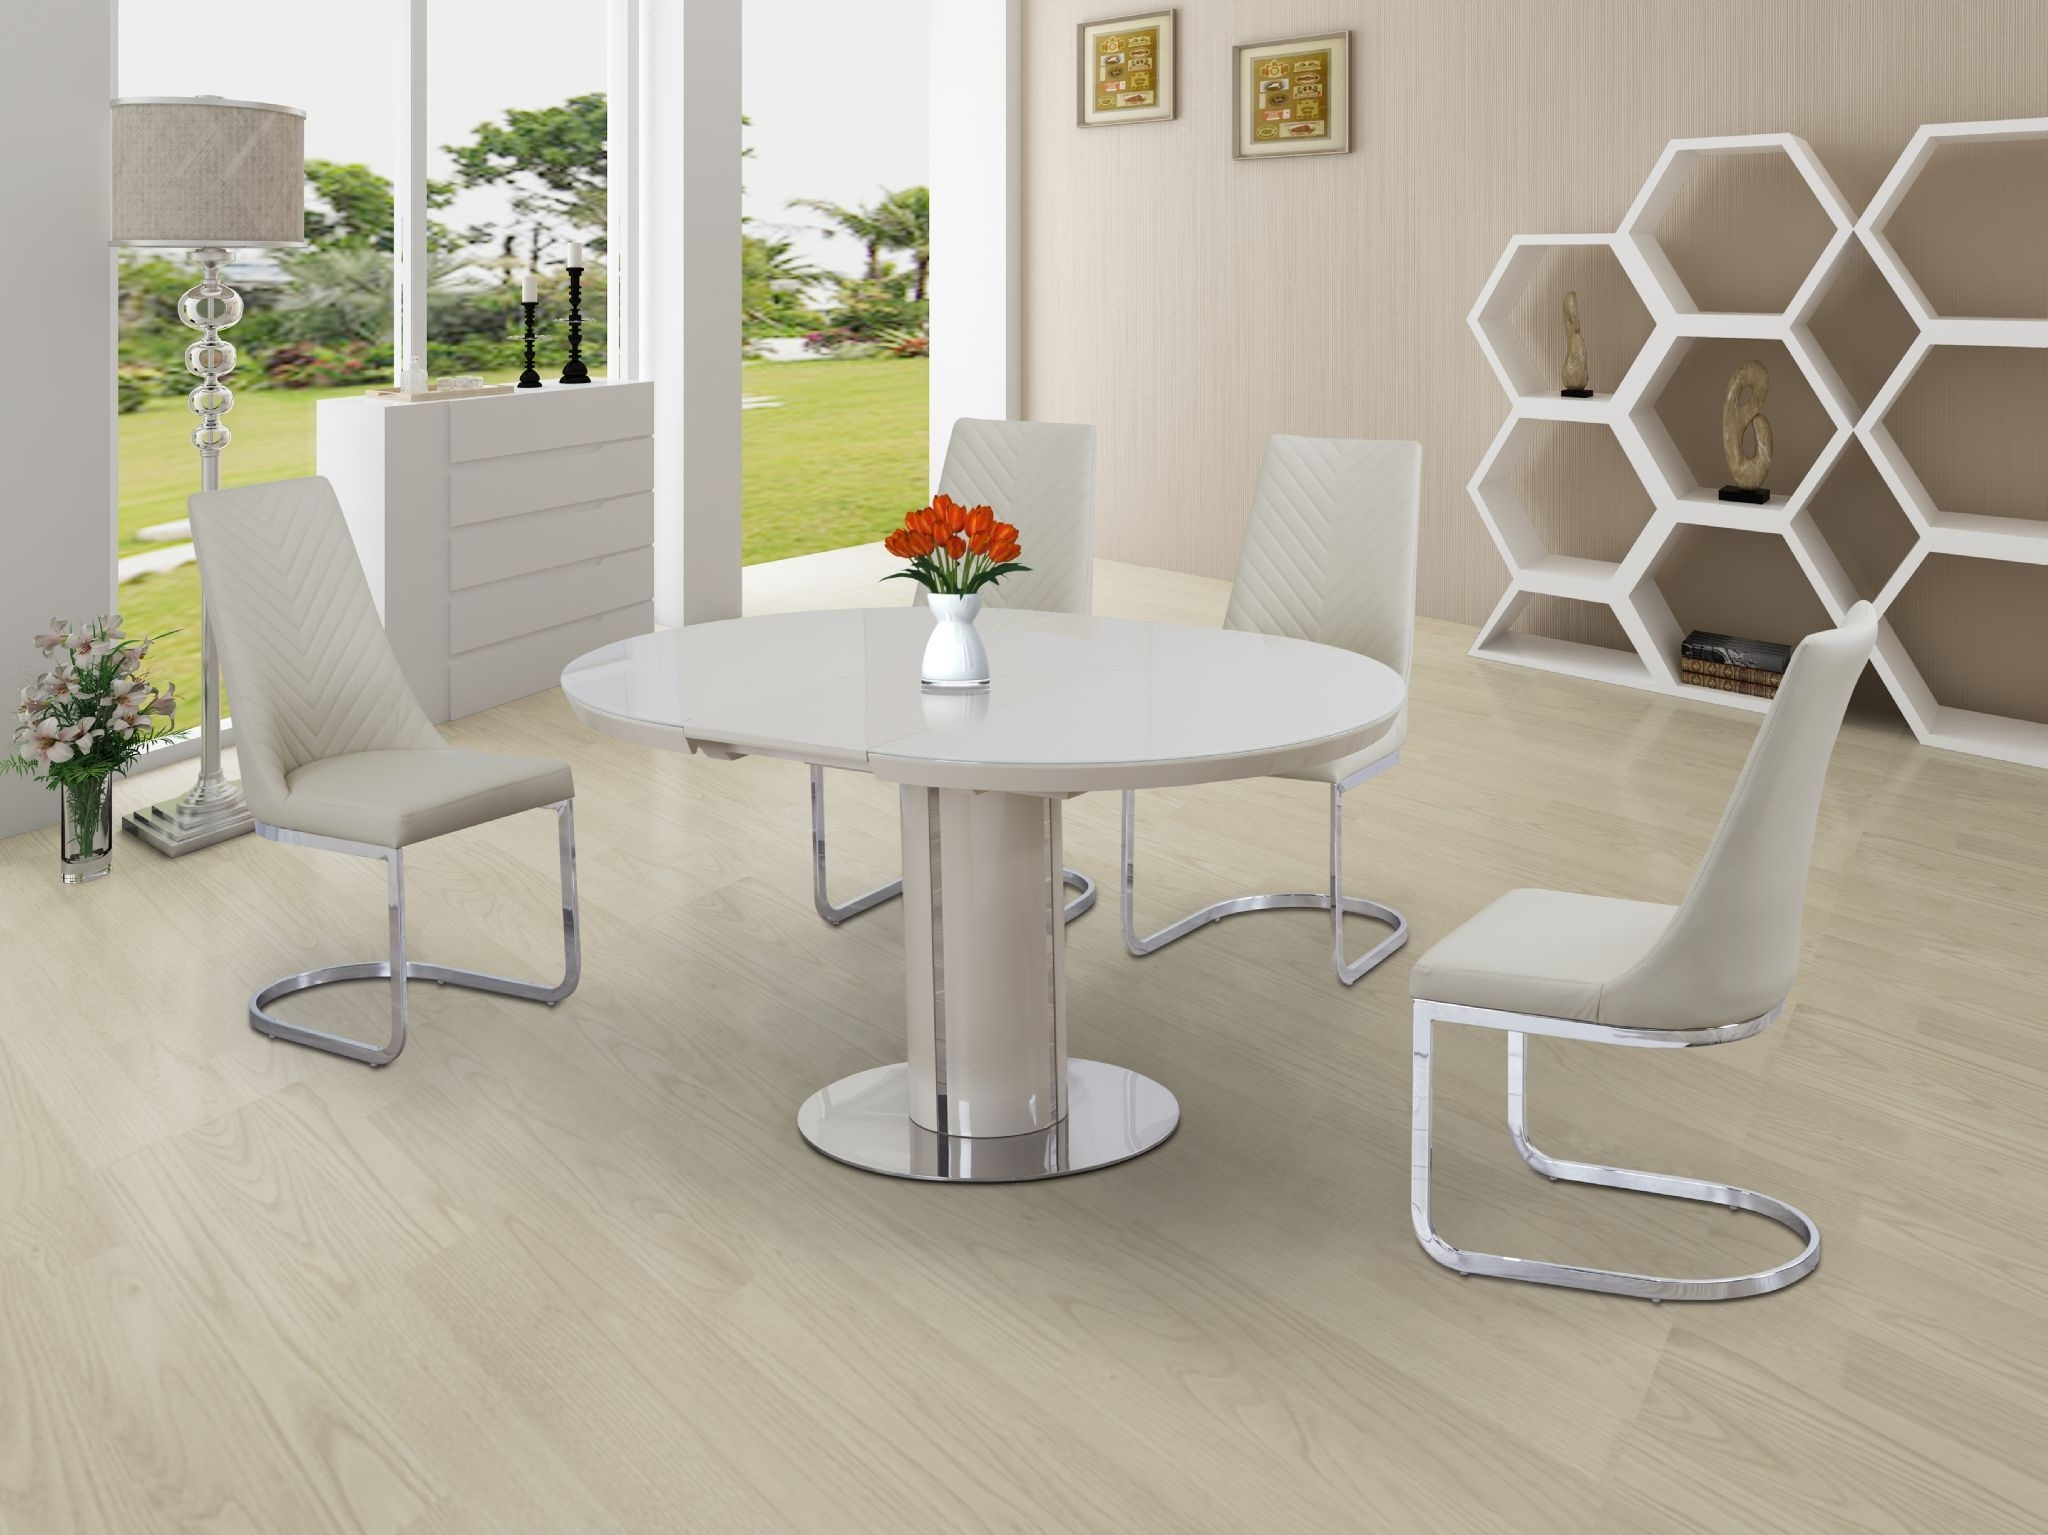 Small Extending Dining Tables And Chairs Inside 2018 Buy Cream Small Round Extendable Dining Table Today (View 5 of 25)